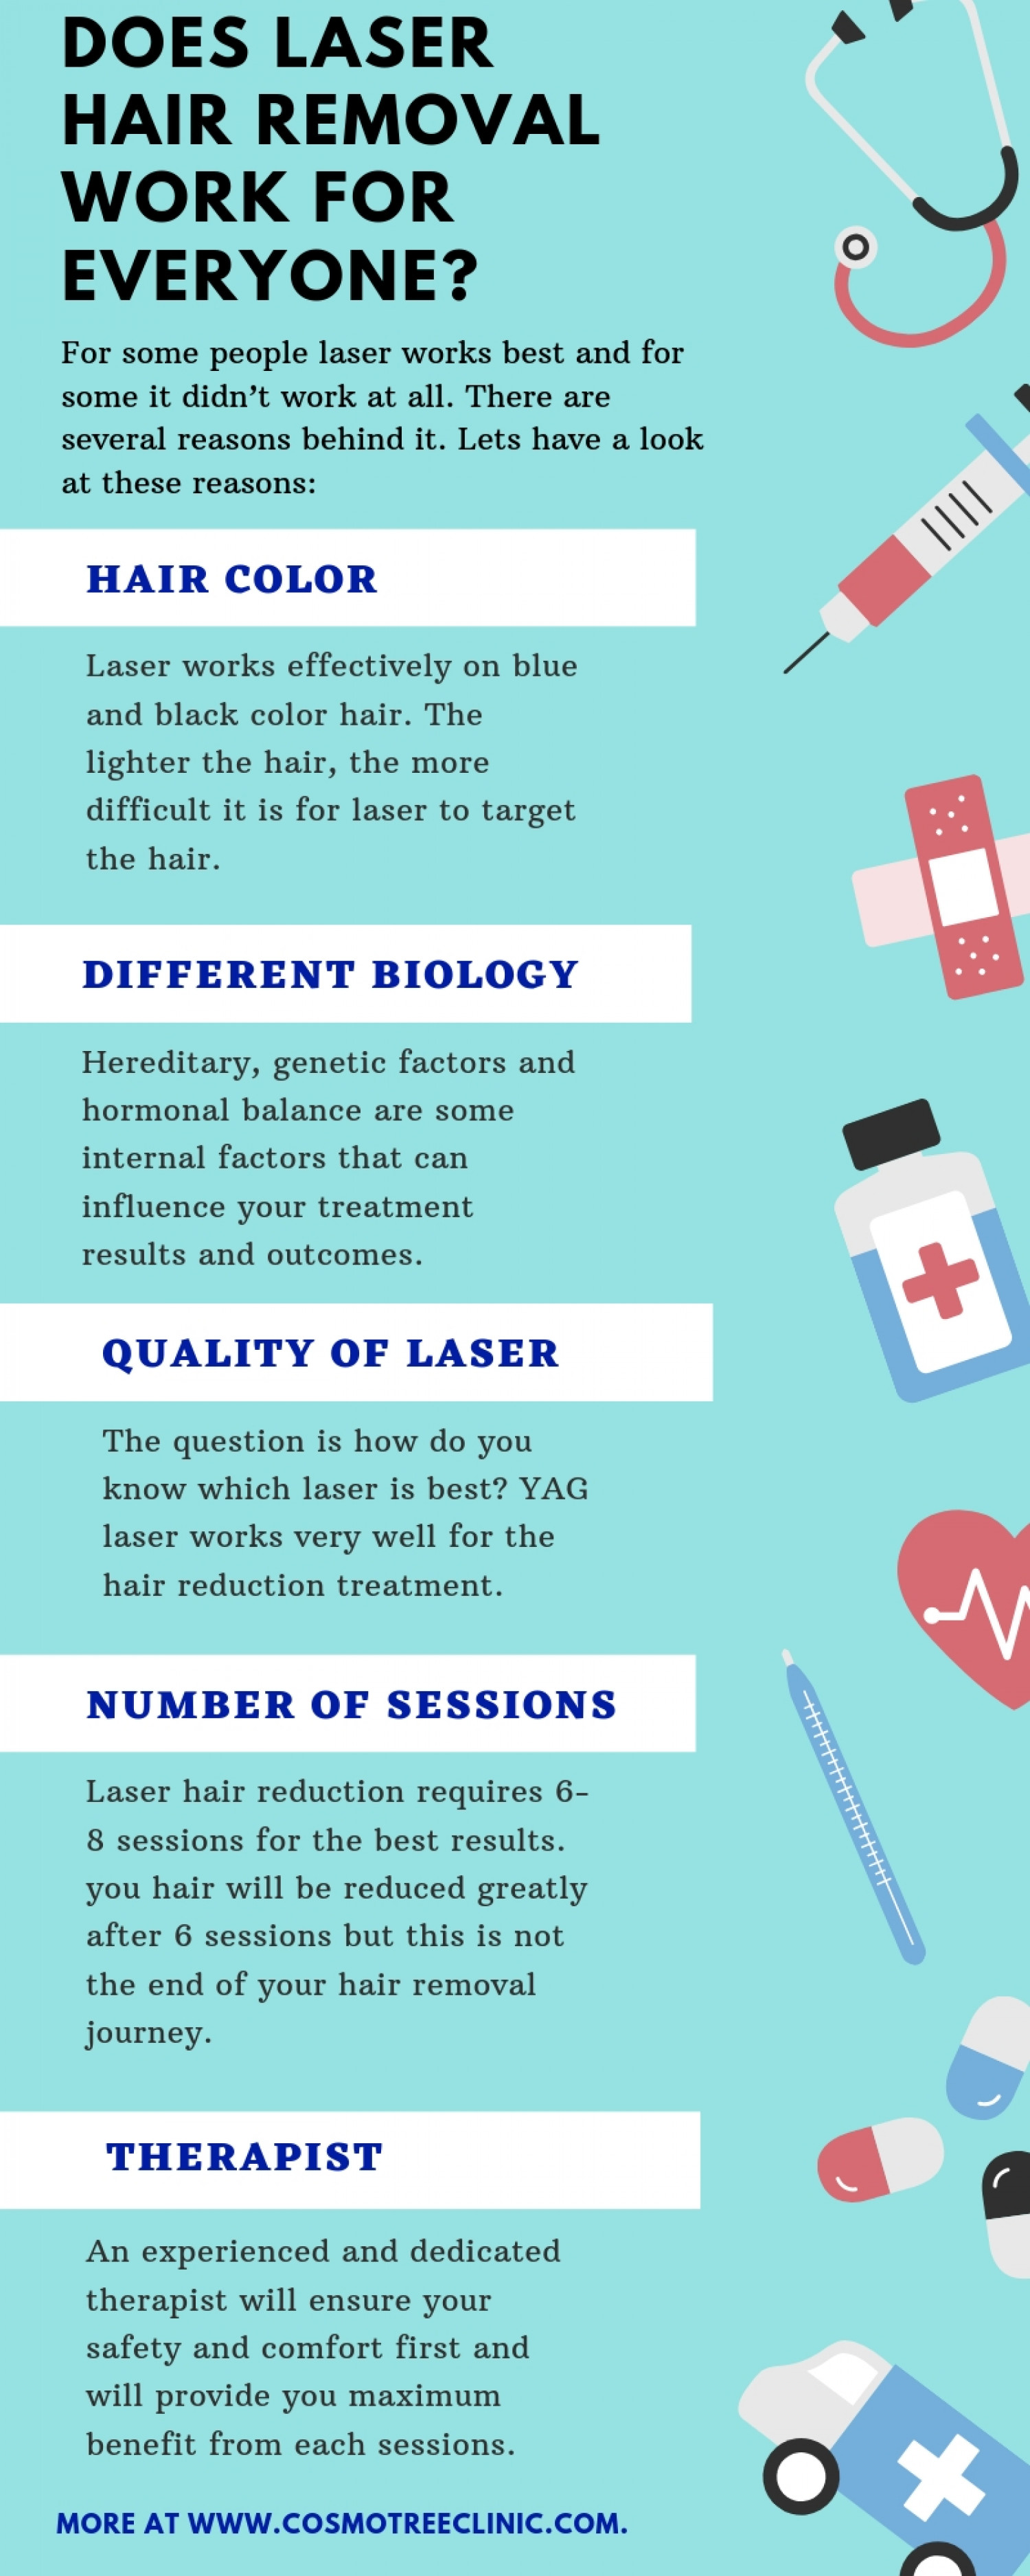 Does Laser Hair Removal Work for Everyone? Infographic